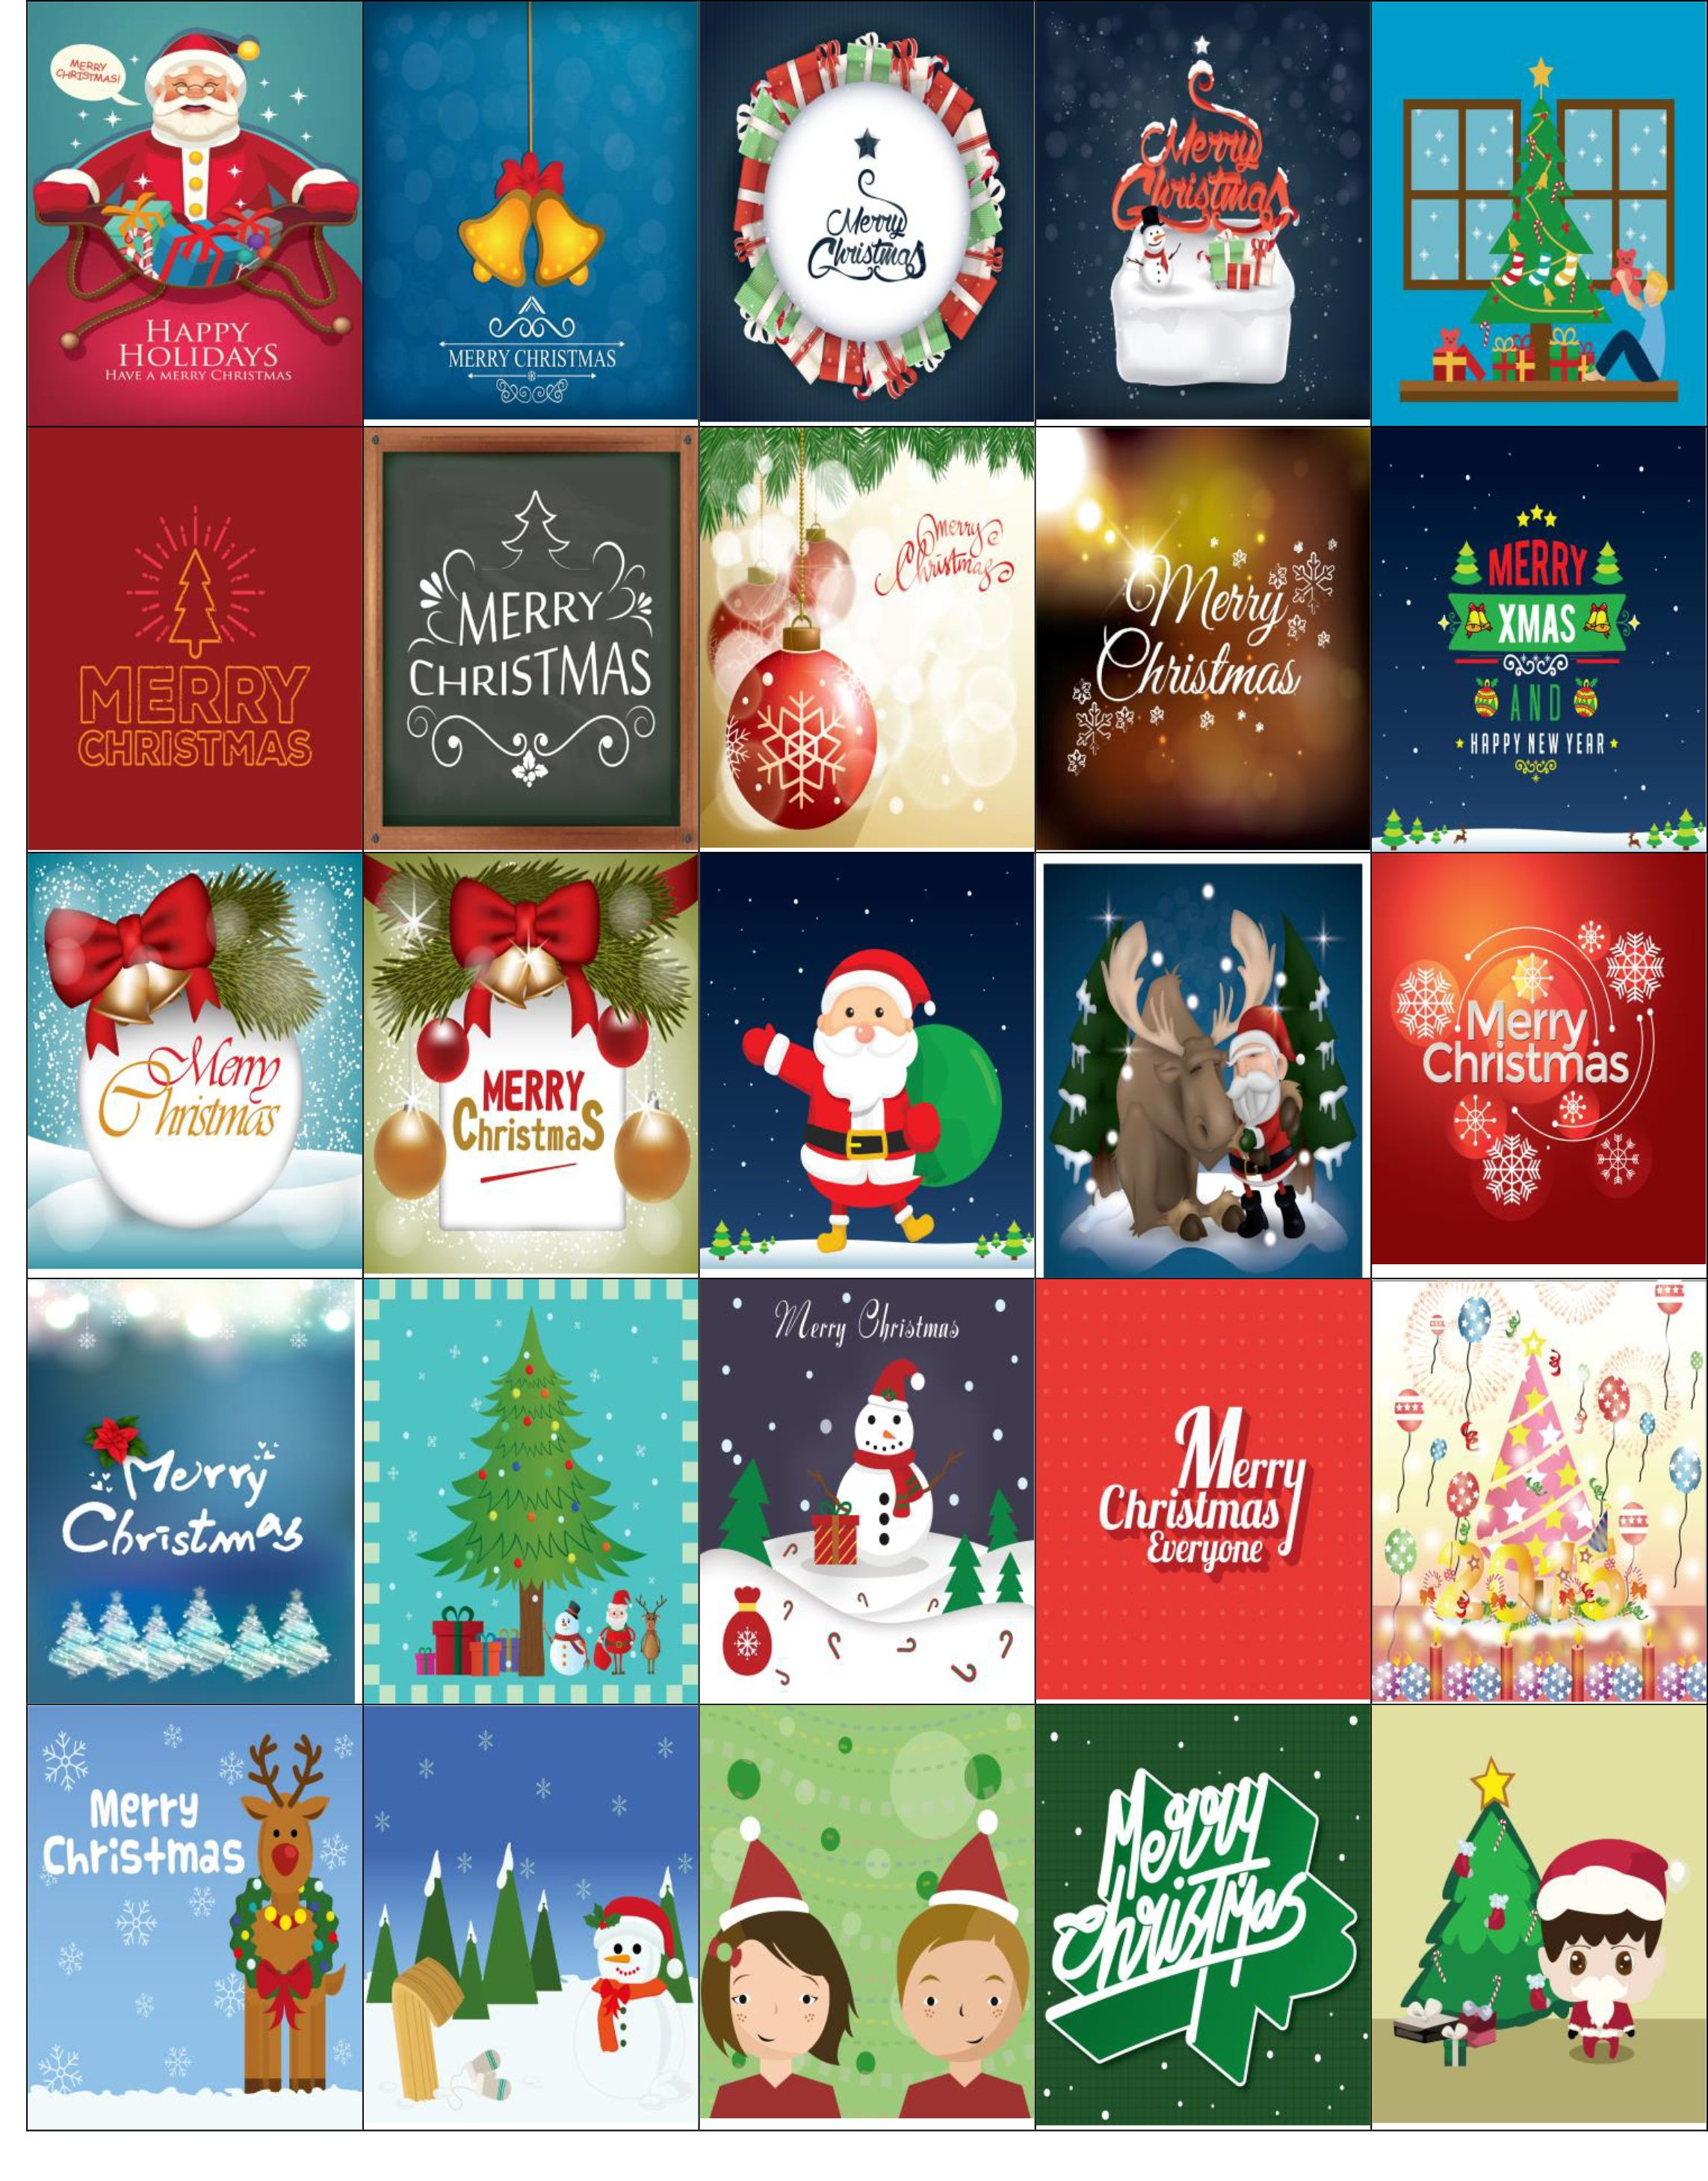 photograph relating to Printable Christmas Stickers called Totally free Printable-Xmas Stickers Terrific For Your Planner